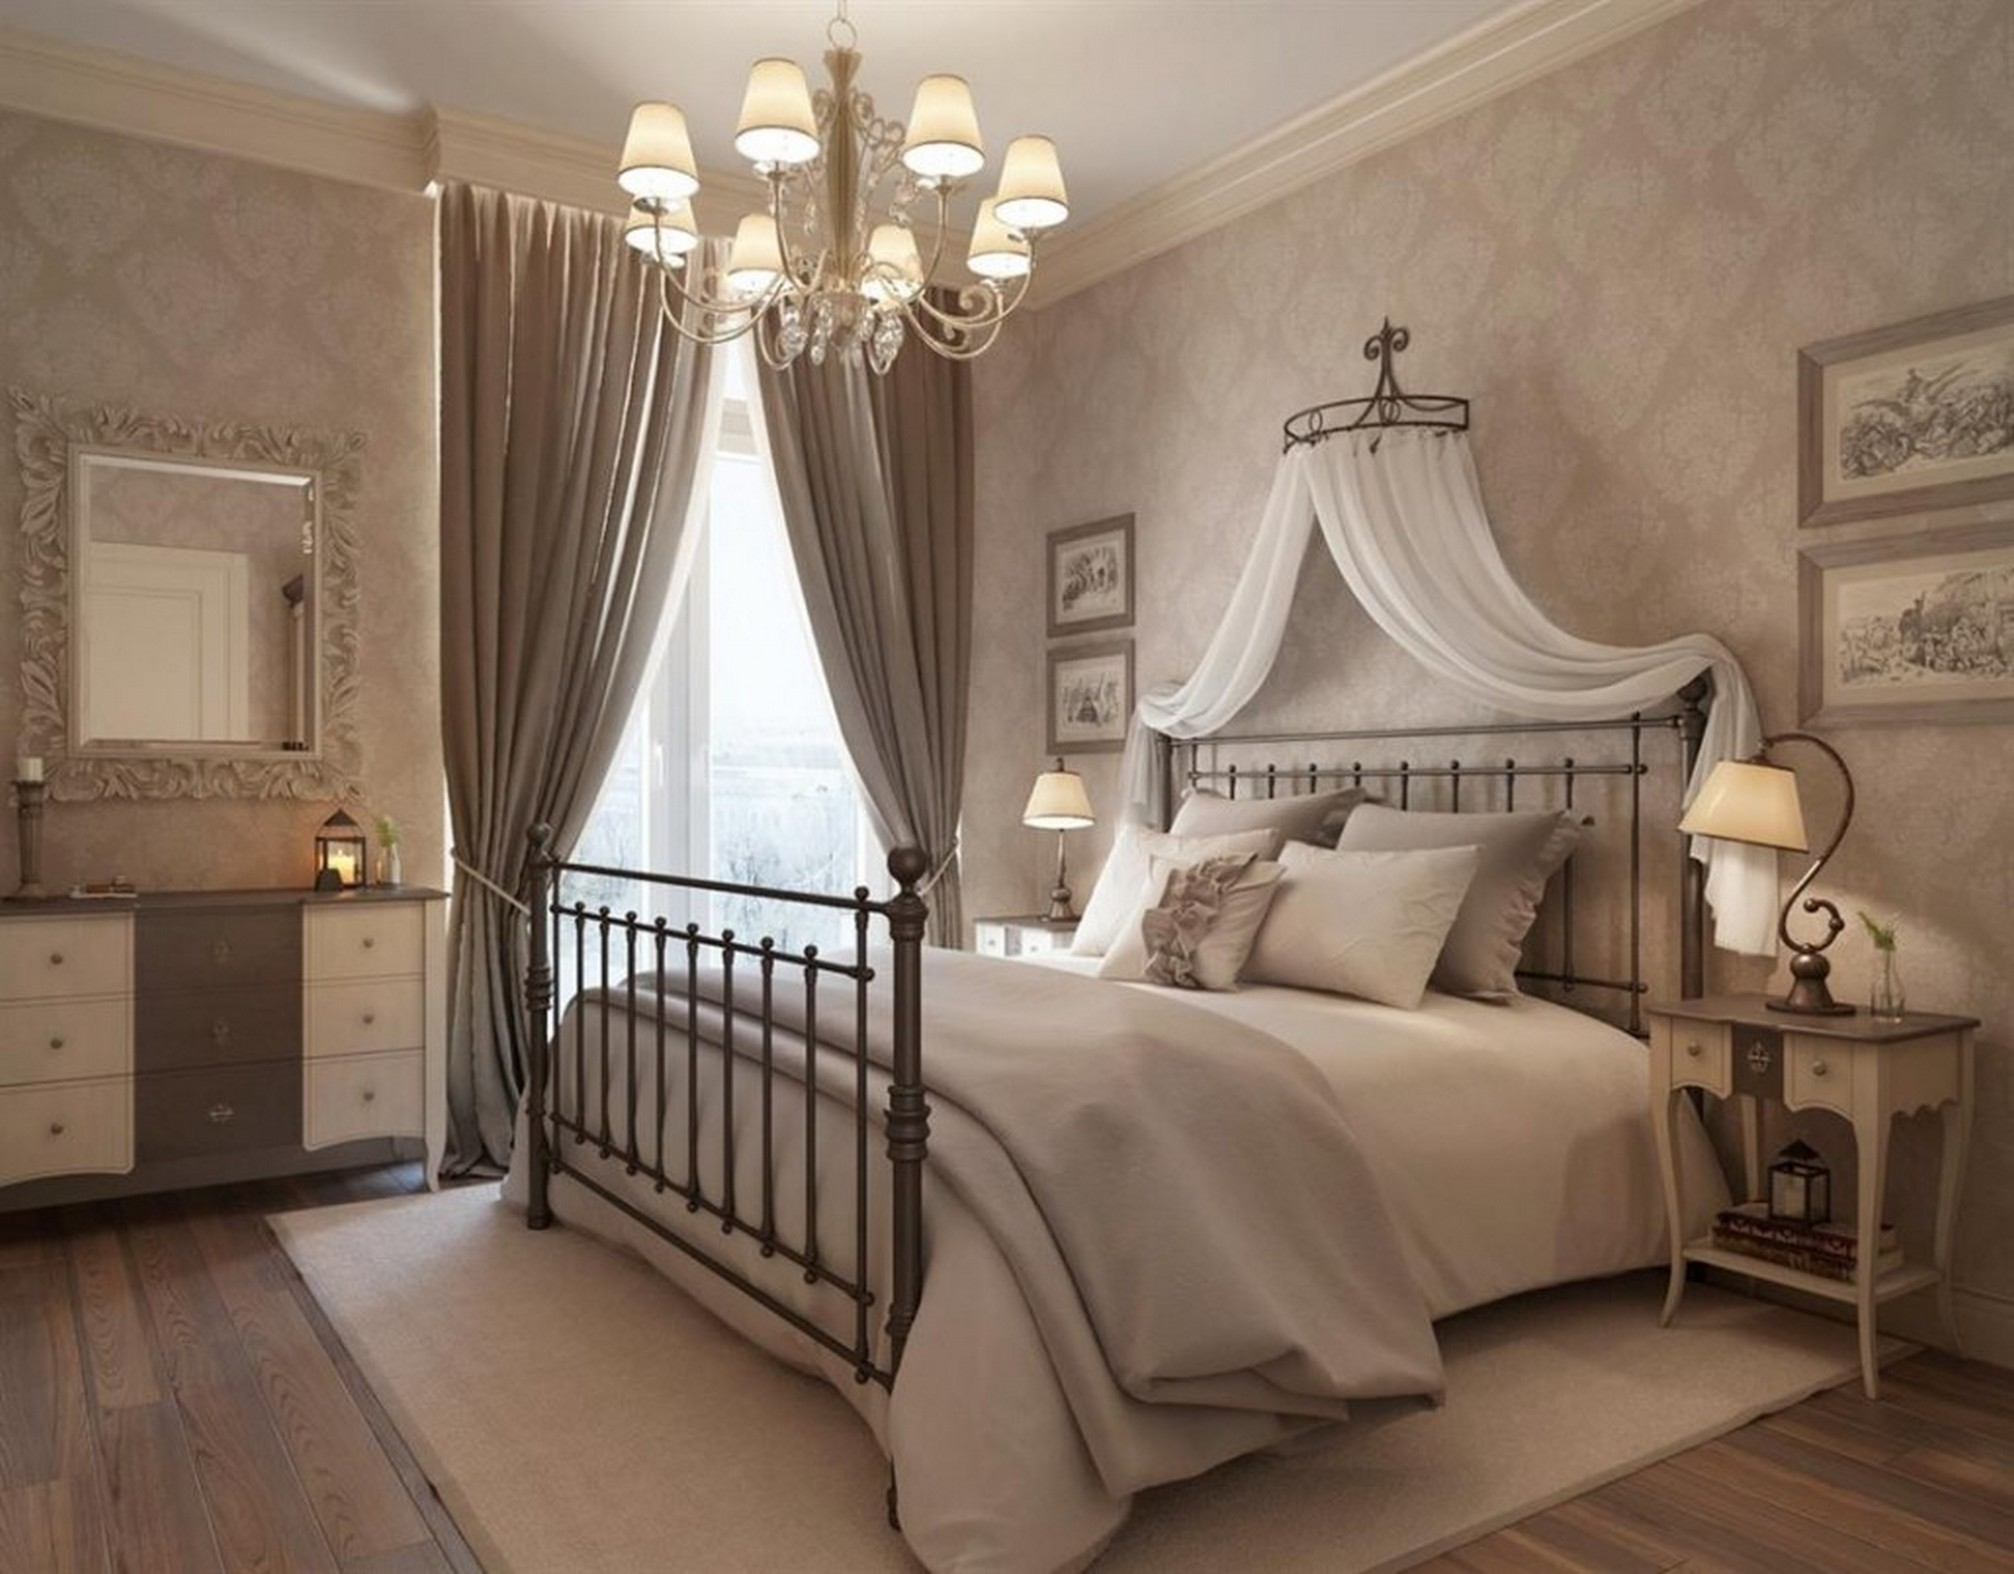 5 Stylish Vintage Bedroom Ideas - This Lady Blogs